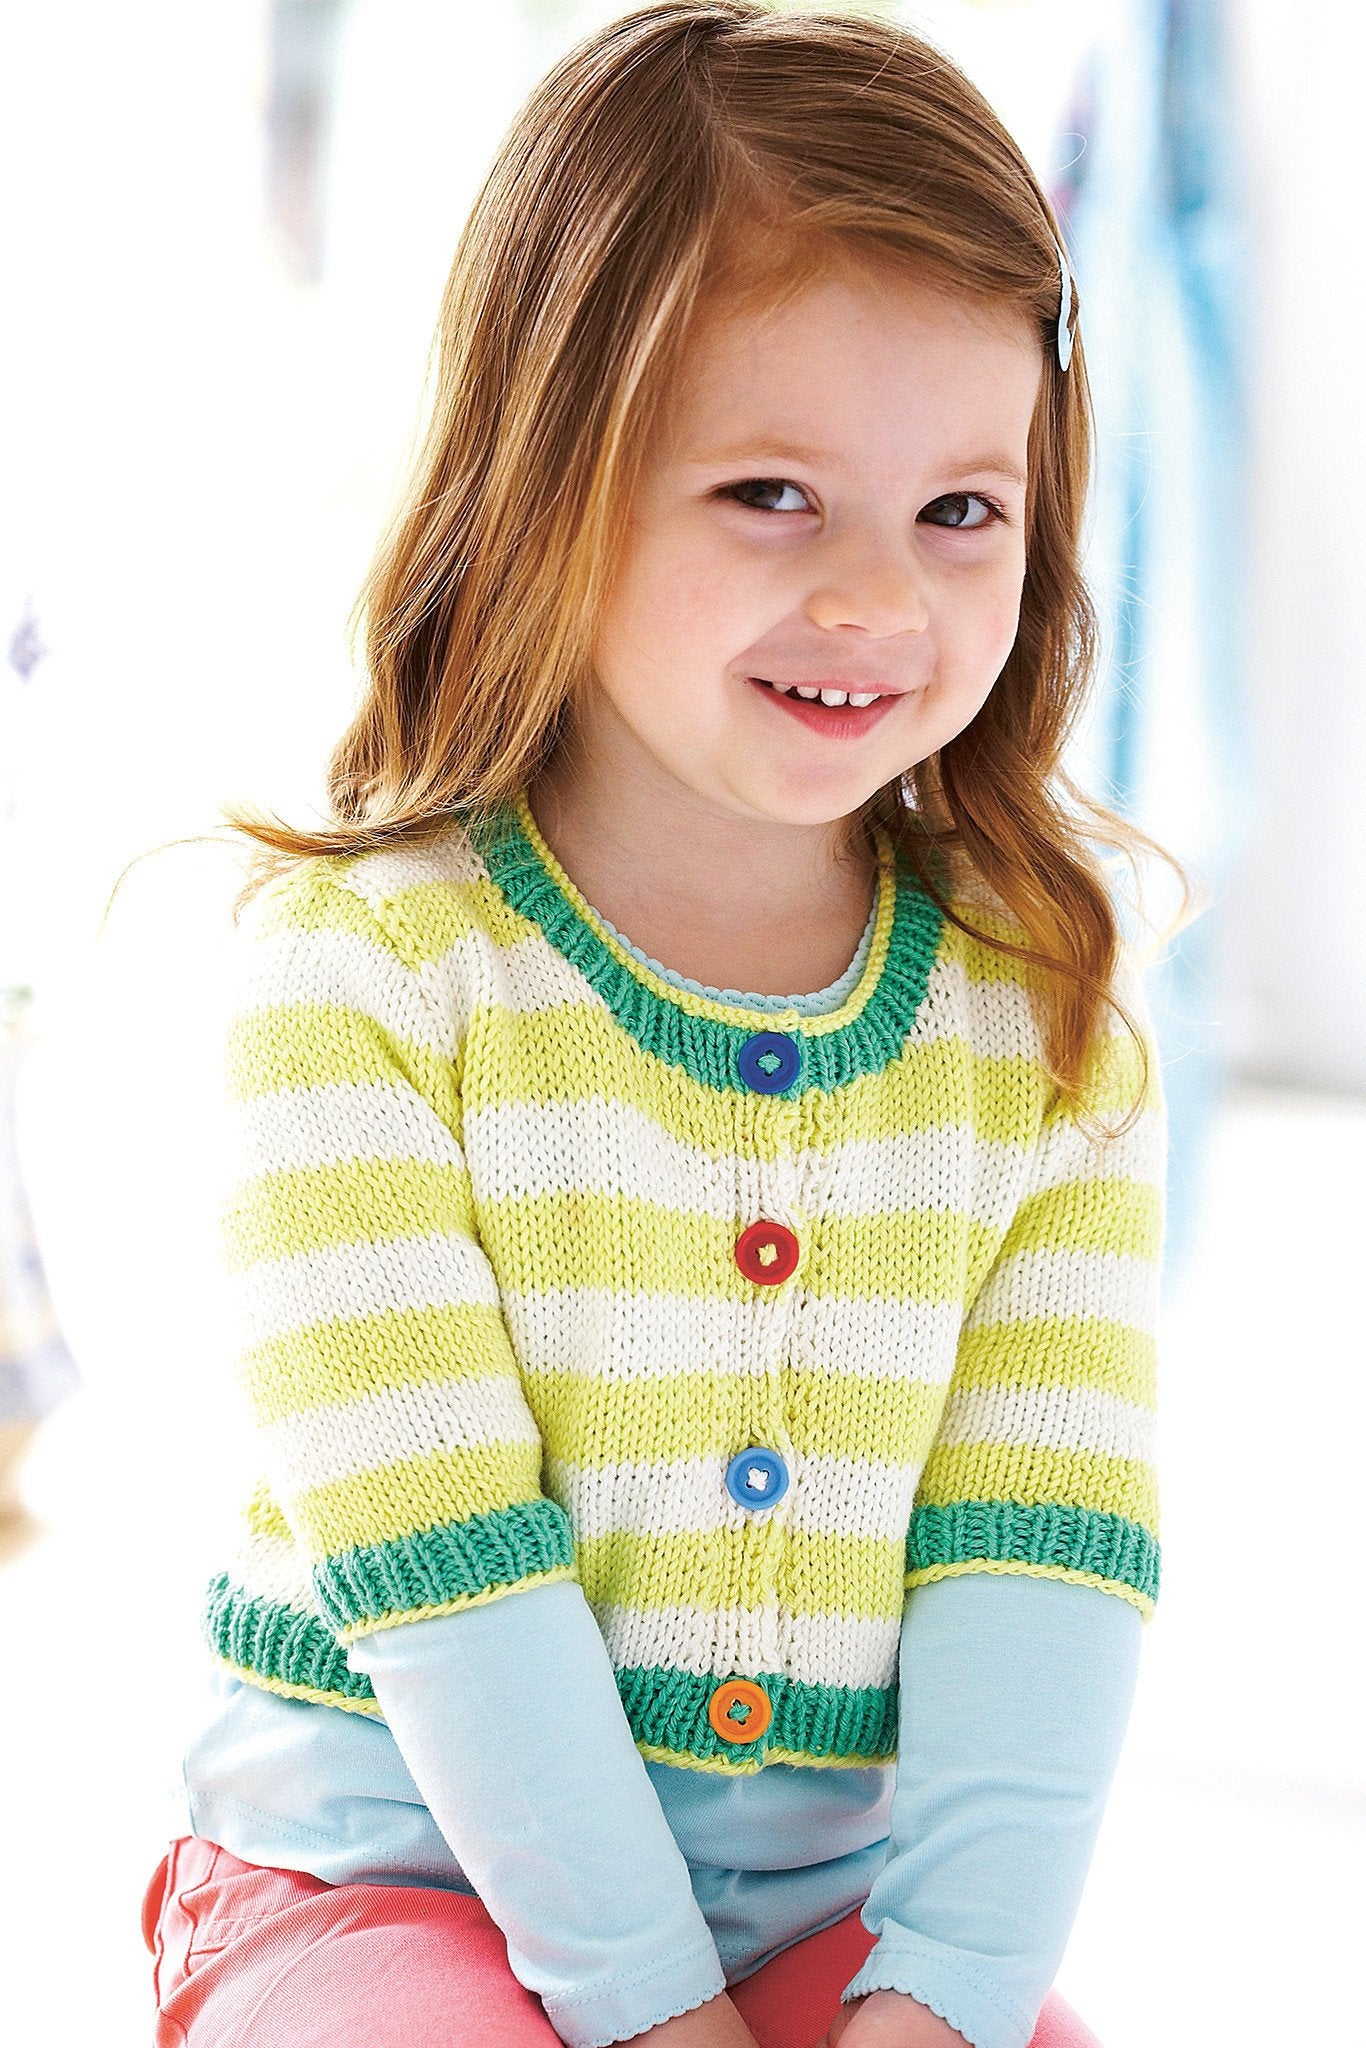 Striped Cardigan Girls Knitting Pattern – The Knitting Network